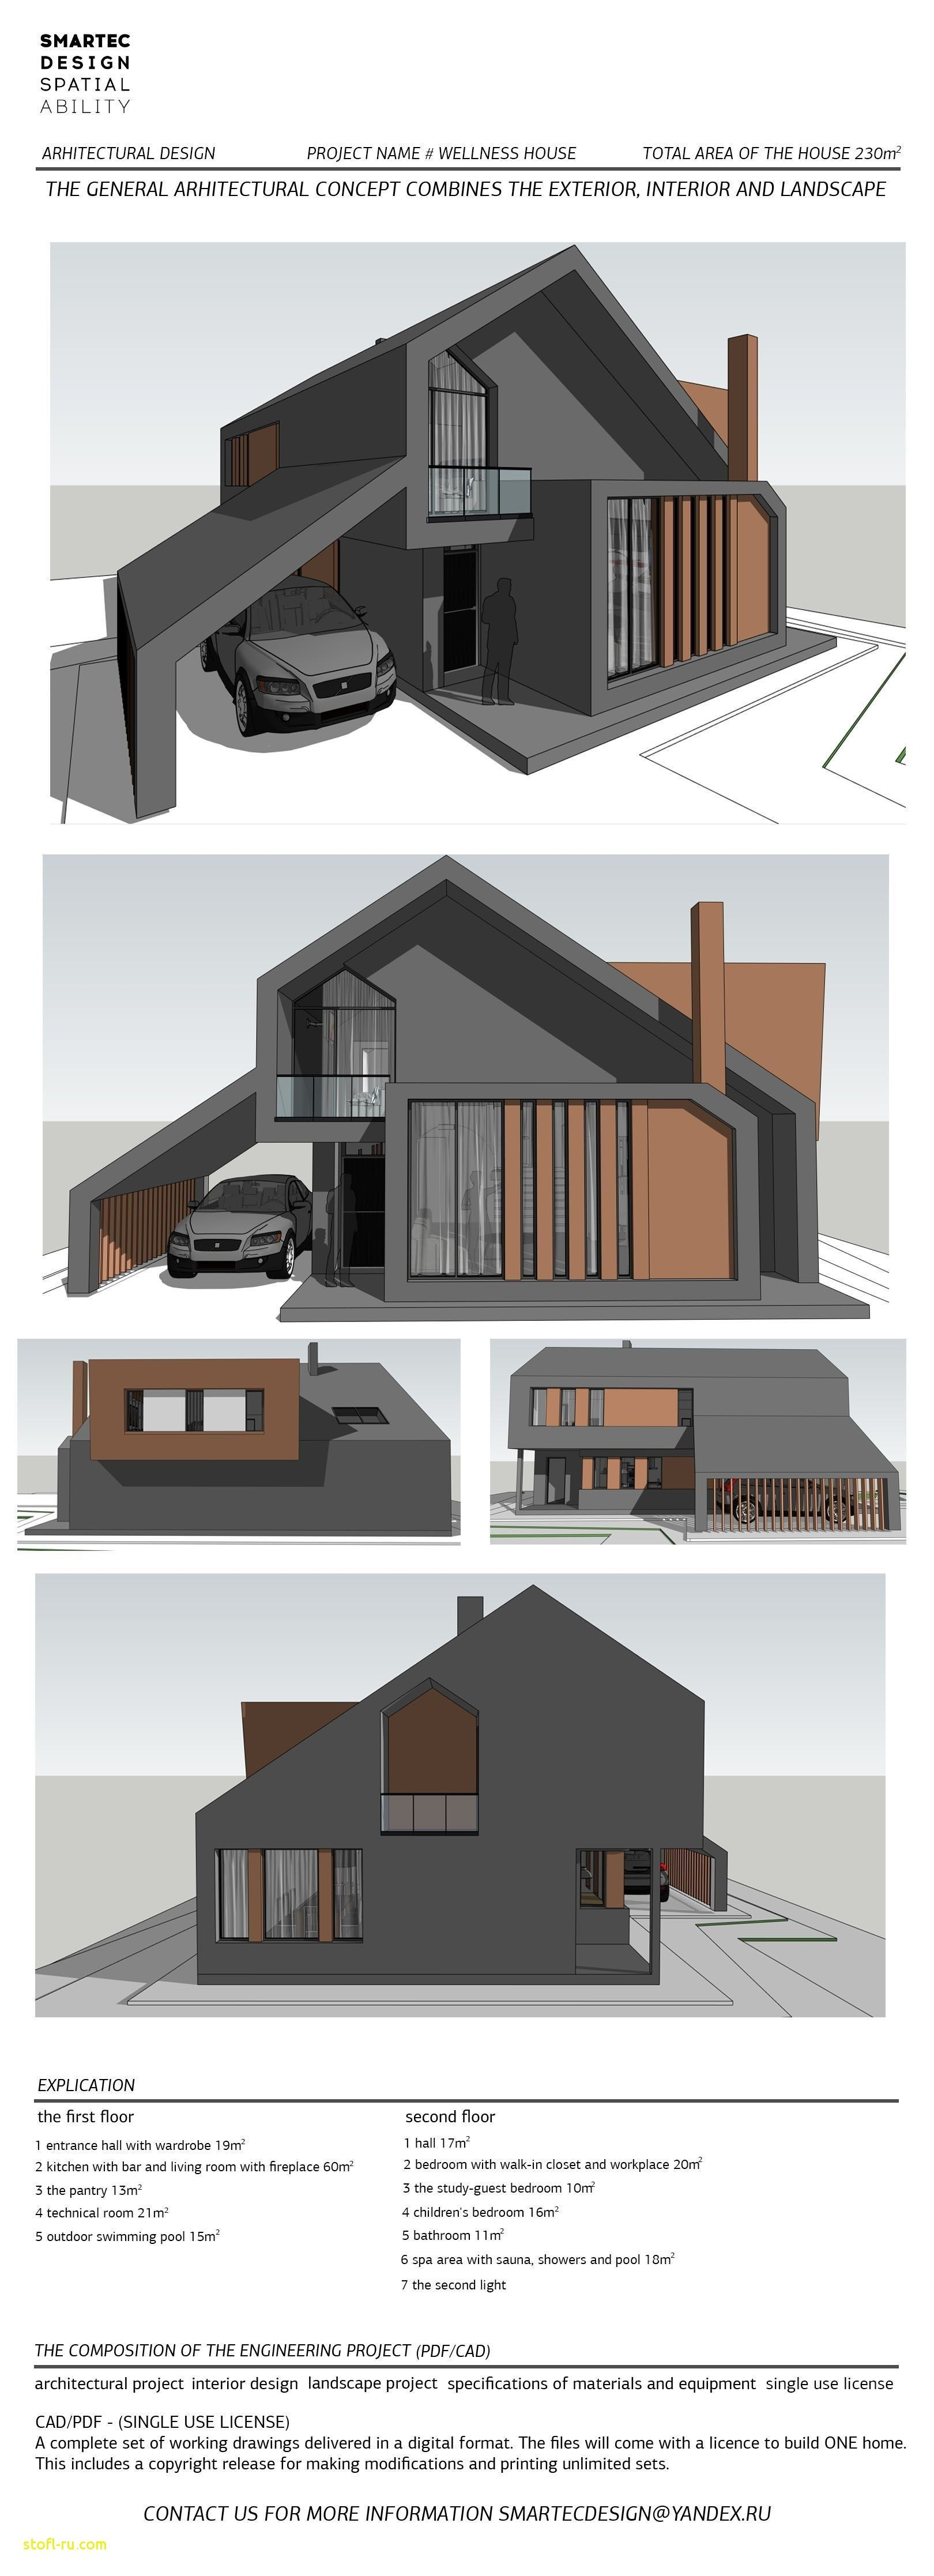 3d home architect home design deluxe 6 full homemade ftempo for 3d home architect home design deluxe 6